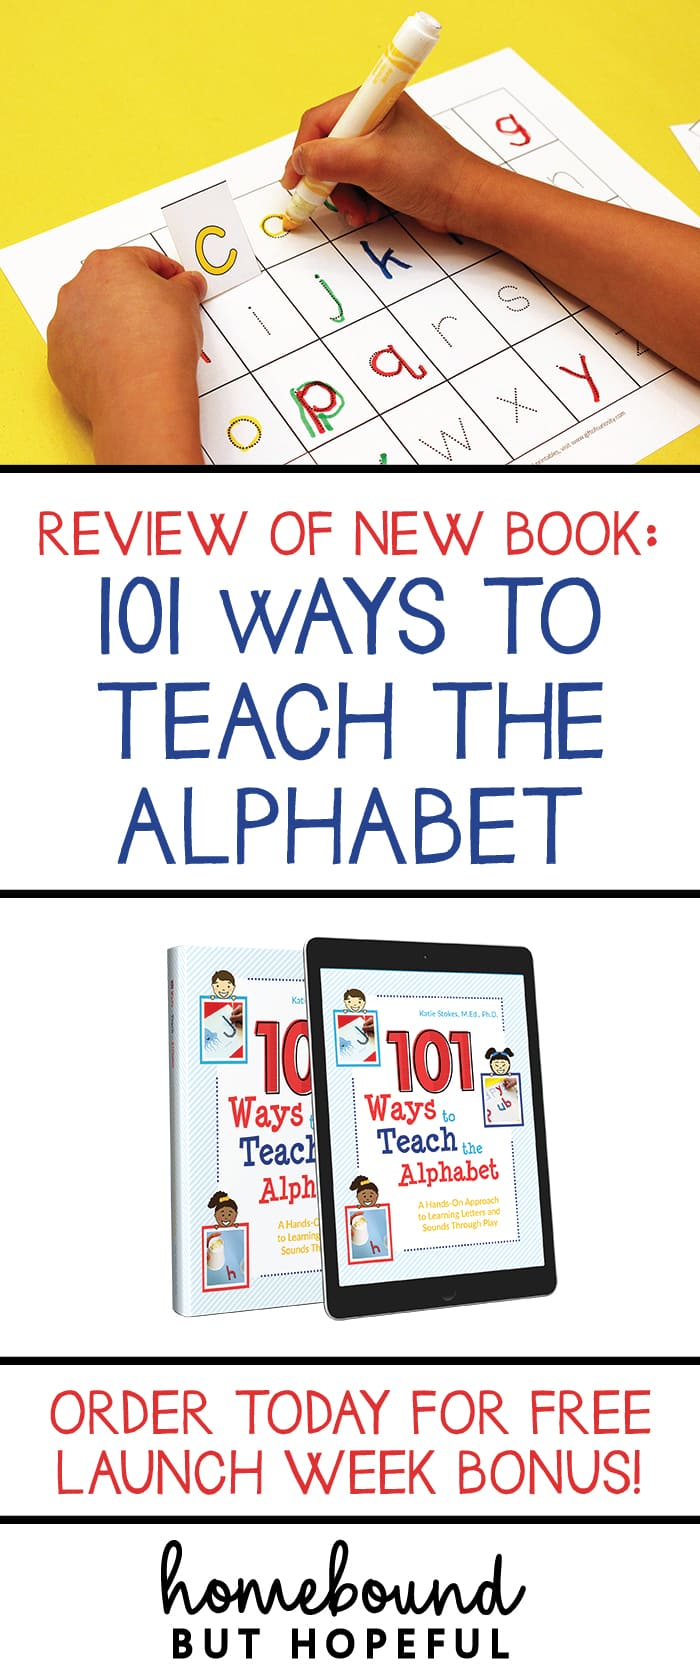 We got an early look at the incredible resource 101 Ways To Teach The Alphabet. This book and printables package is packed full of ideas to help your little ones master their A-B-Cs while having fun! Order during launch week to take advantage of savings and free bonus offers! Early Learning | Early Literacy | Homeschool